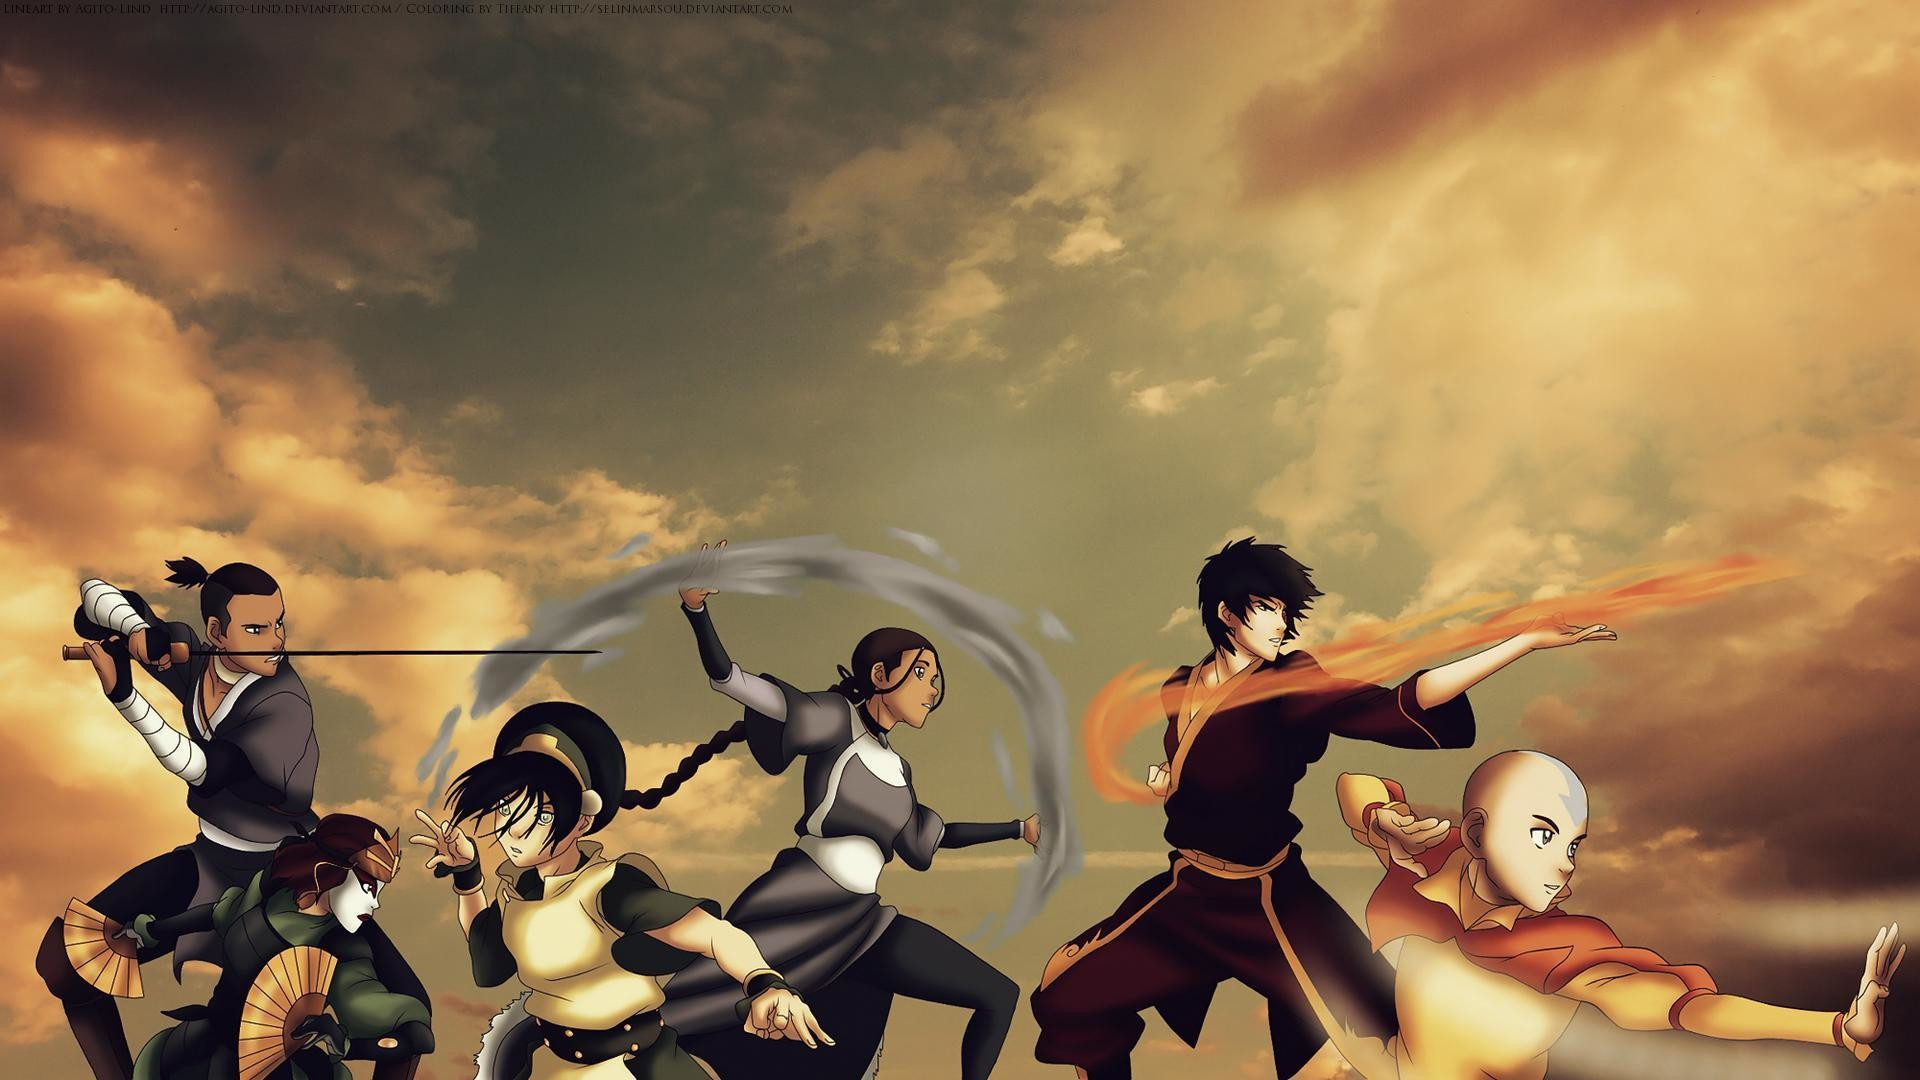 Avatar the Last Airbender Wallpaper (73+ images)